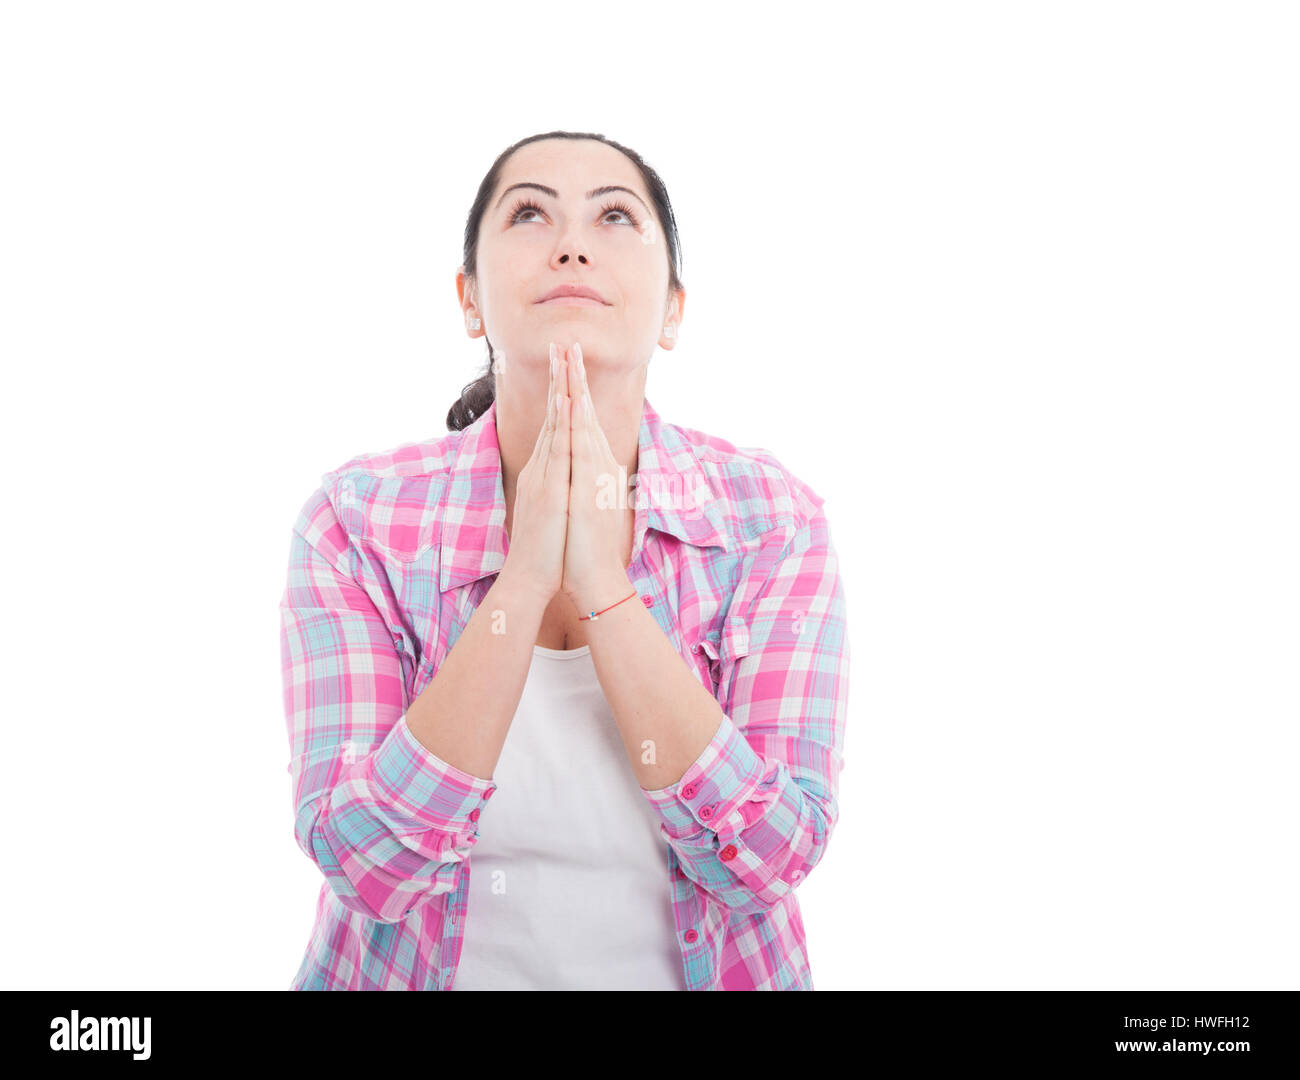 Beautiful lady praying for something with clasped hands isolated on white - Stock Image